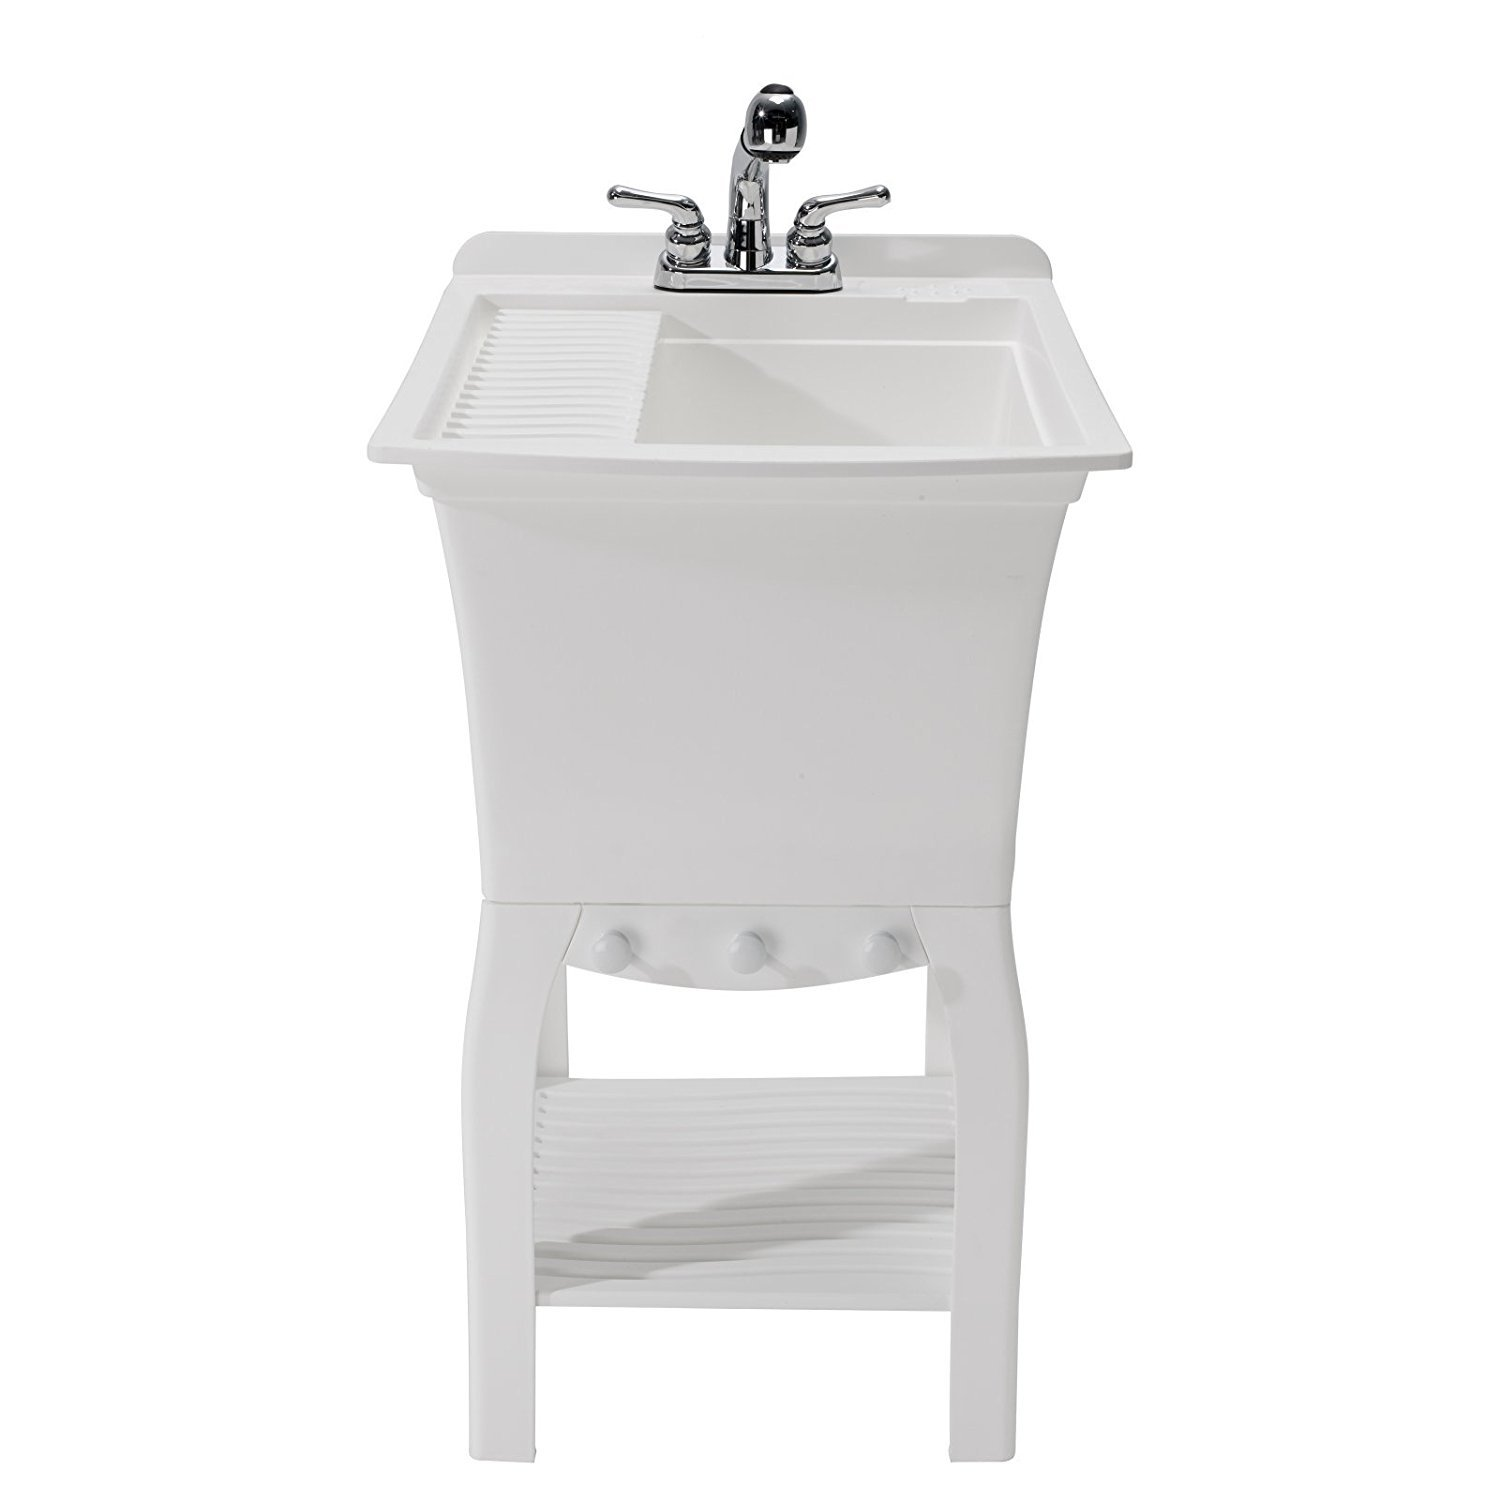 CASHEL 1990-32-01 The Fitz Workstation - Fully Loaded Sink Kit, White by Cashel